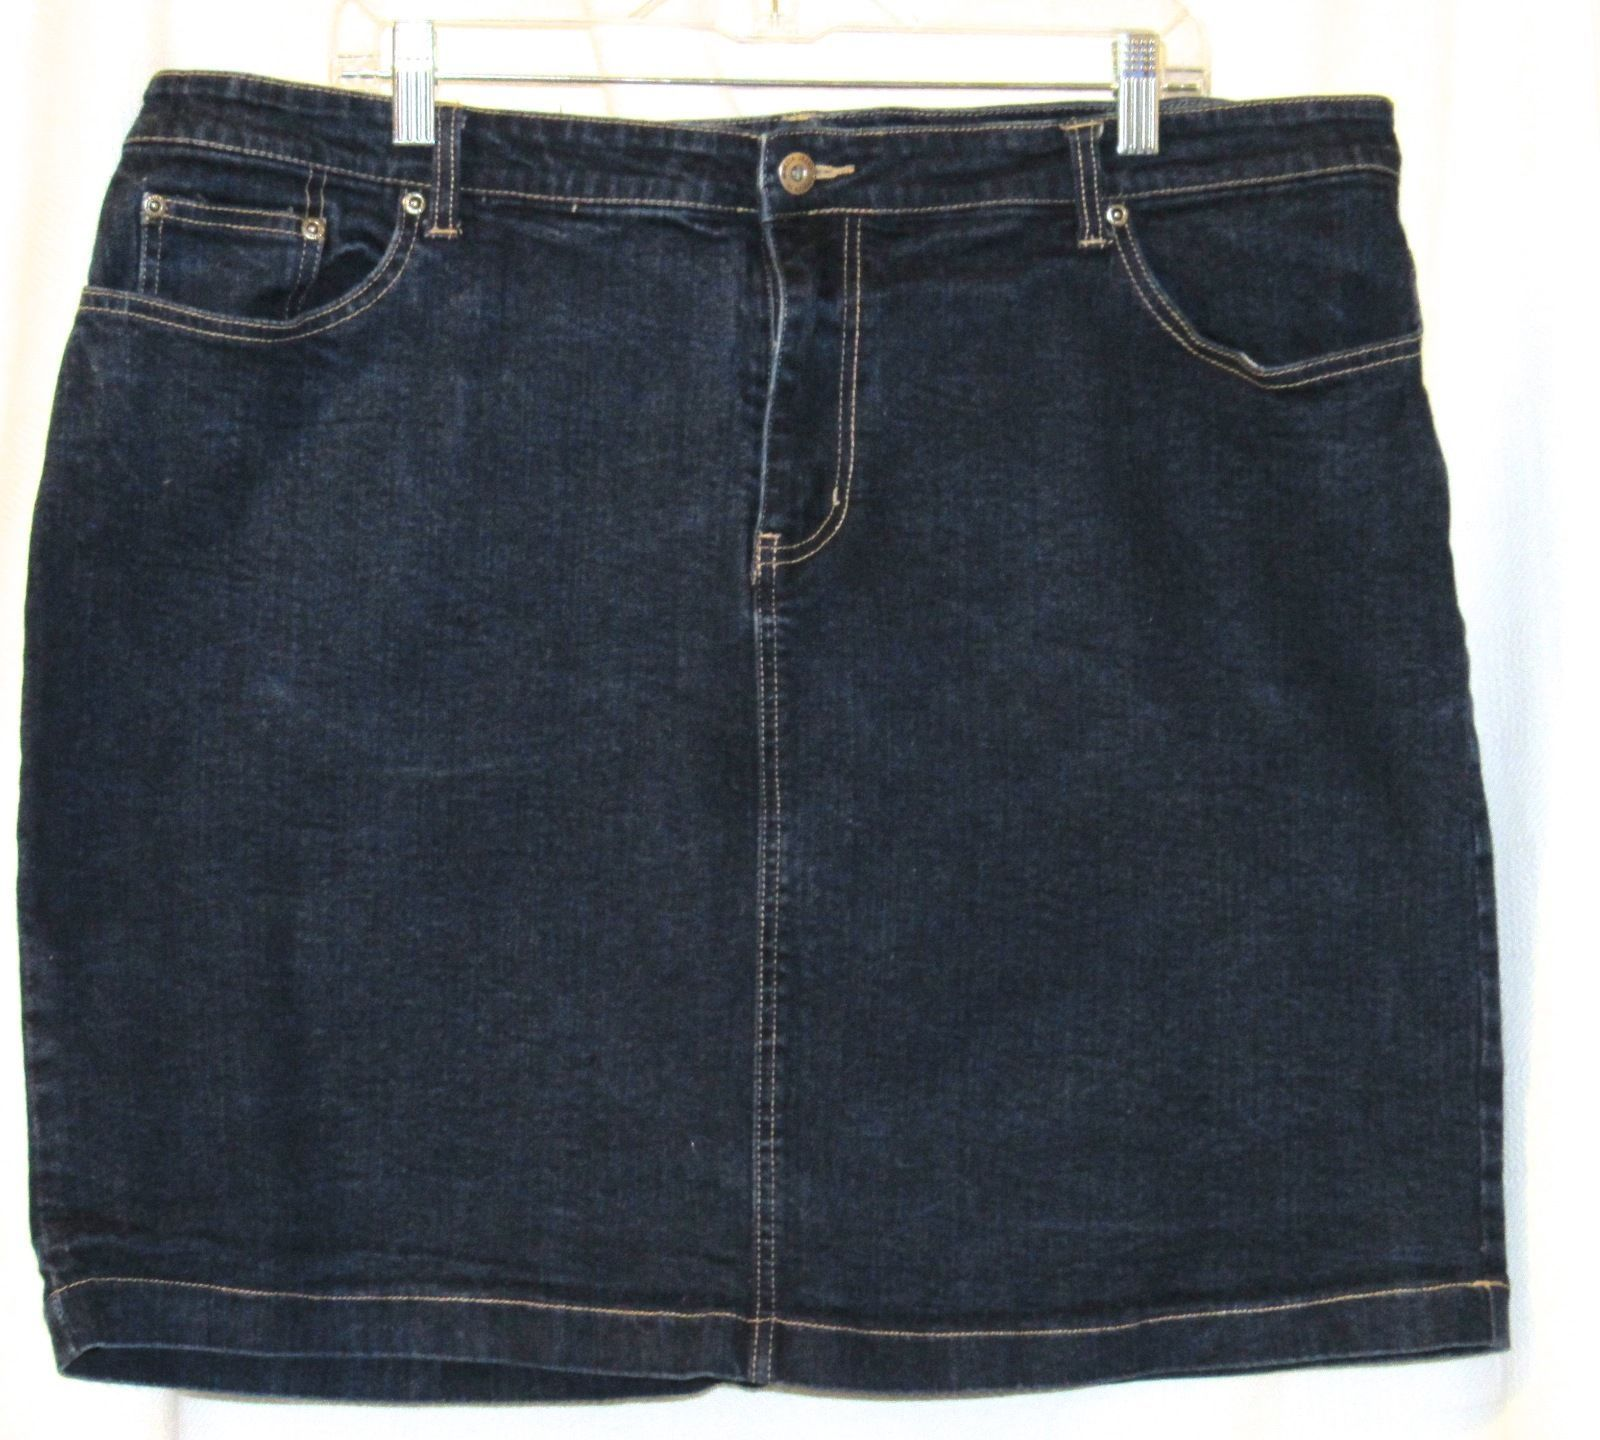 Venezia Dark Blue Stretch Cotton Denim Jean Skirt Plus Size